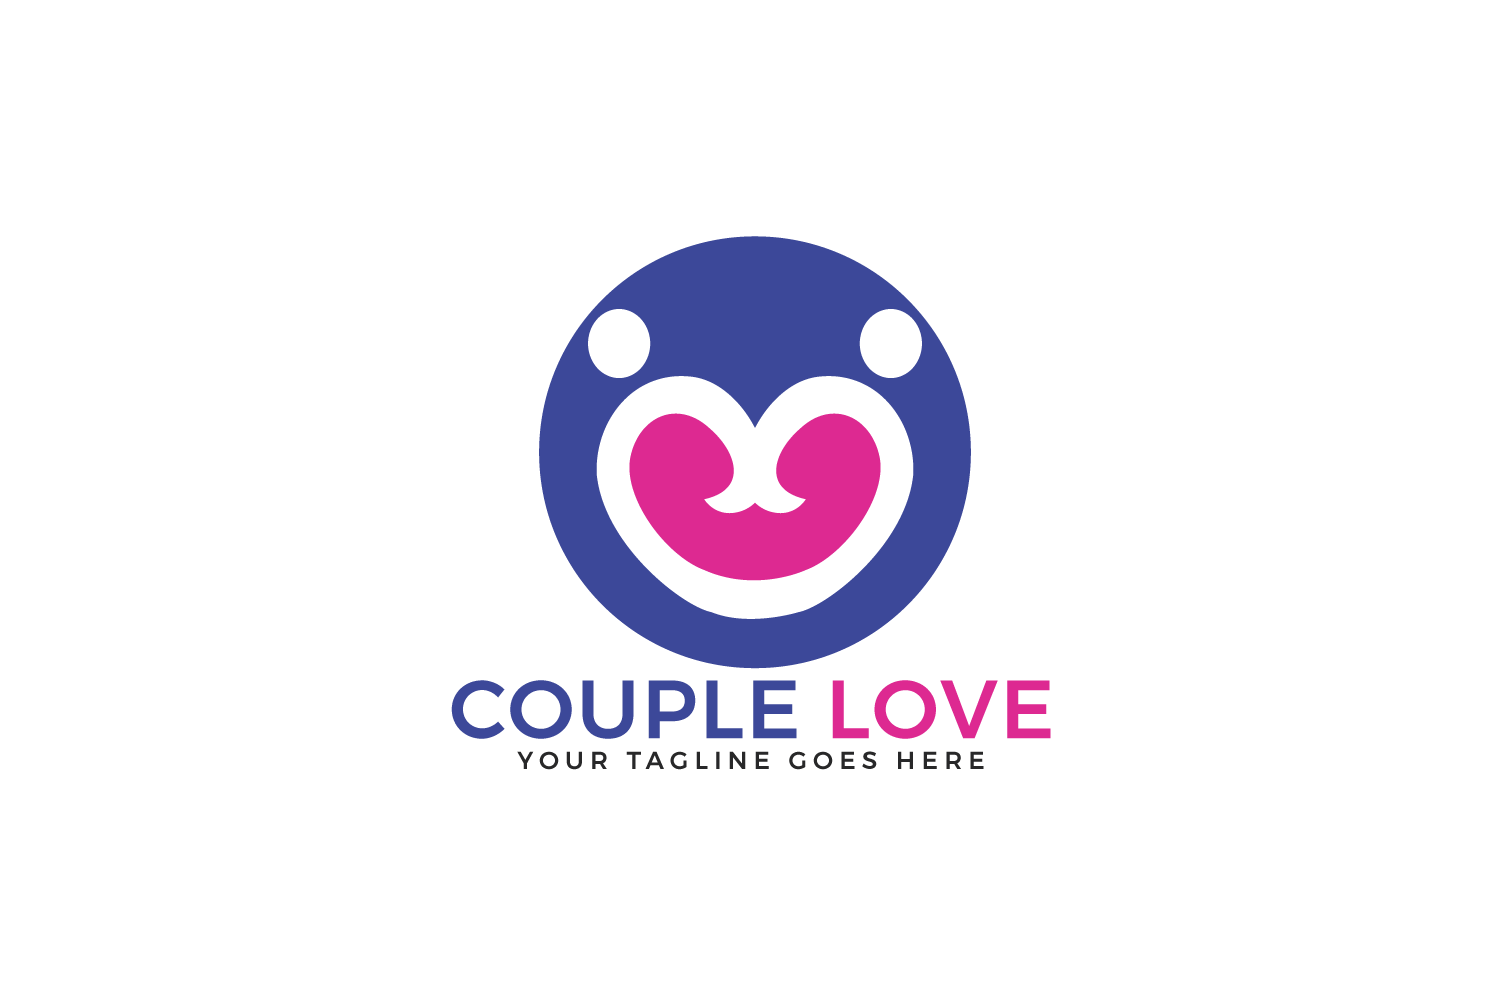 Couple Love Vector Logo Design. example image 2